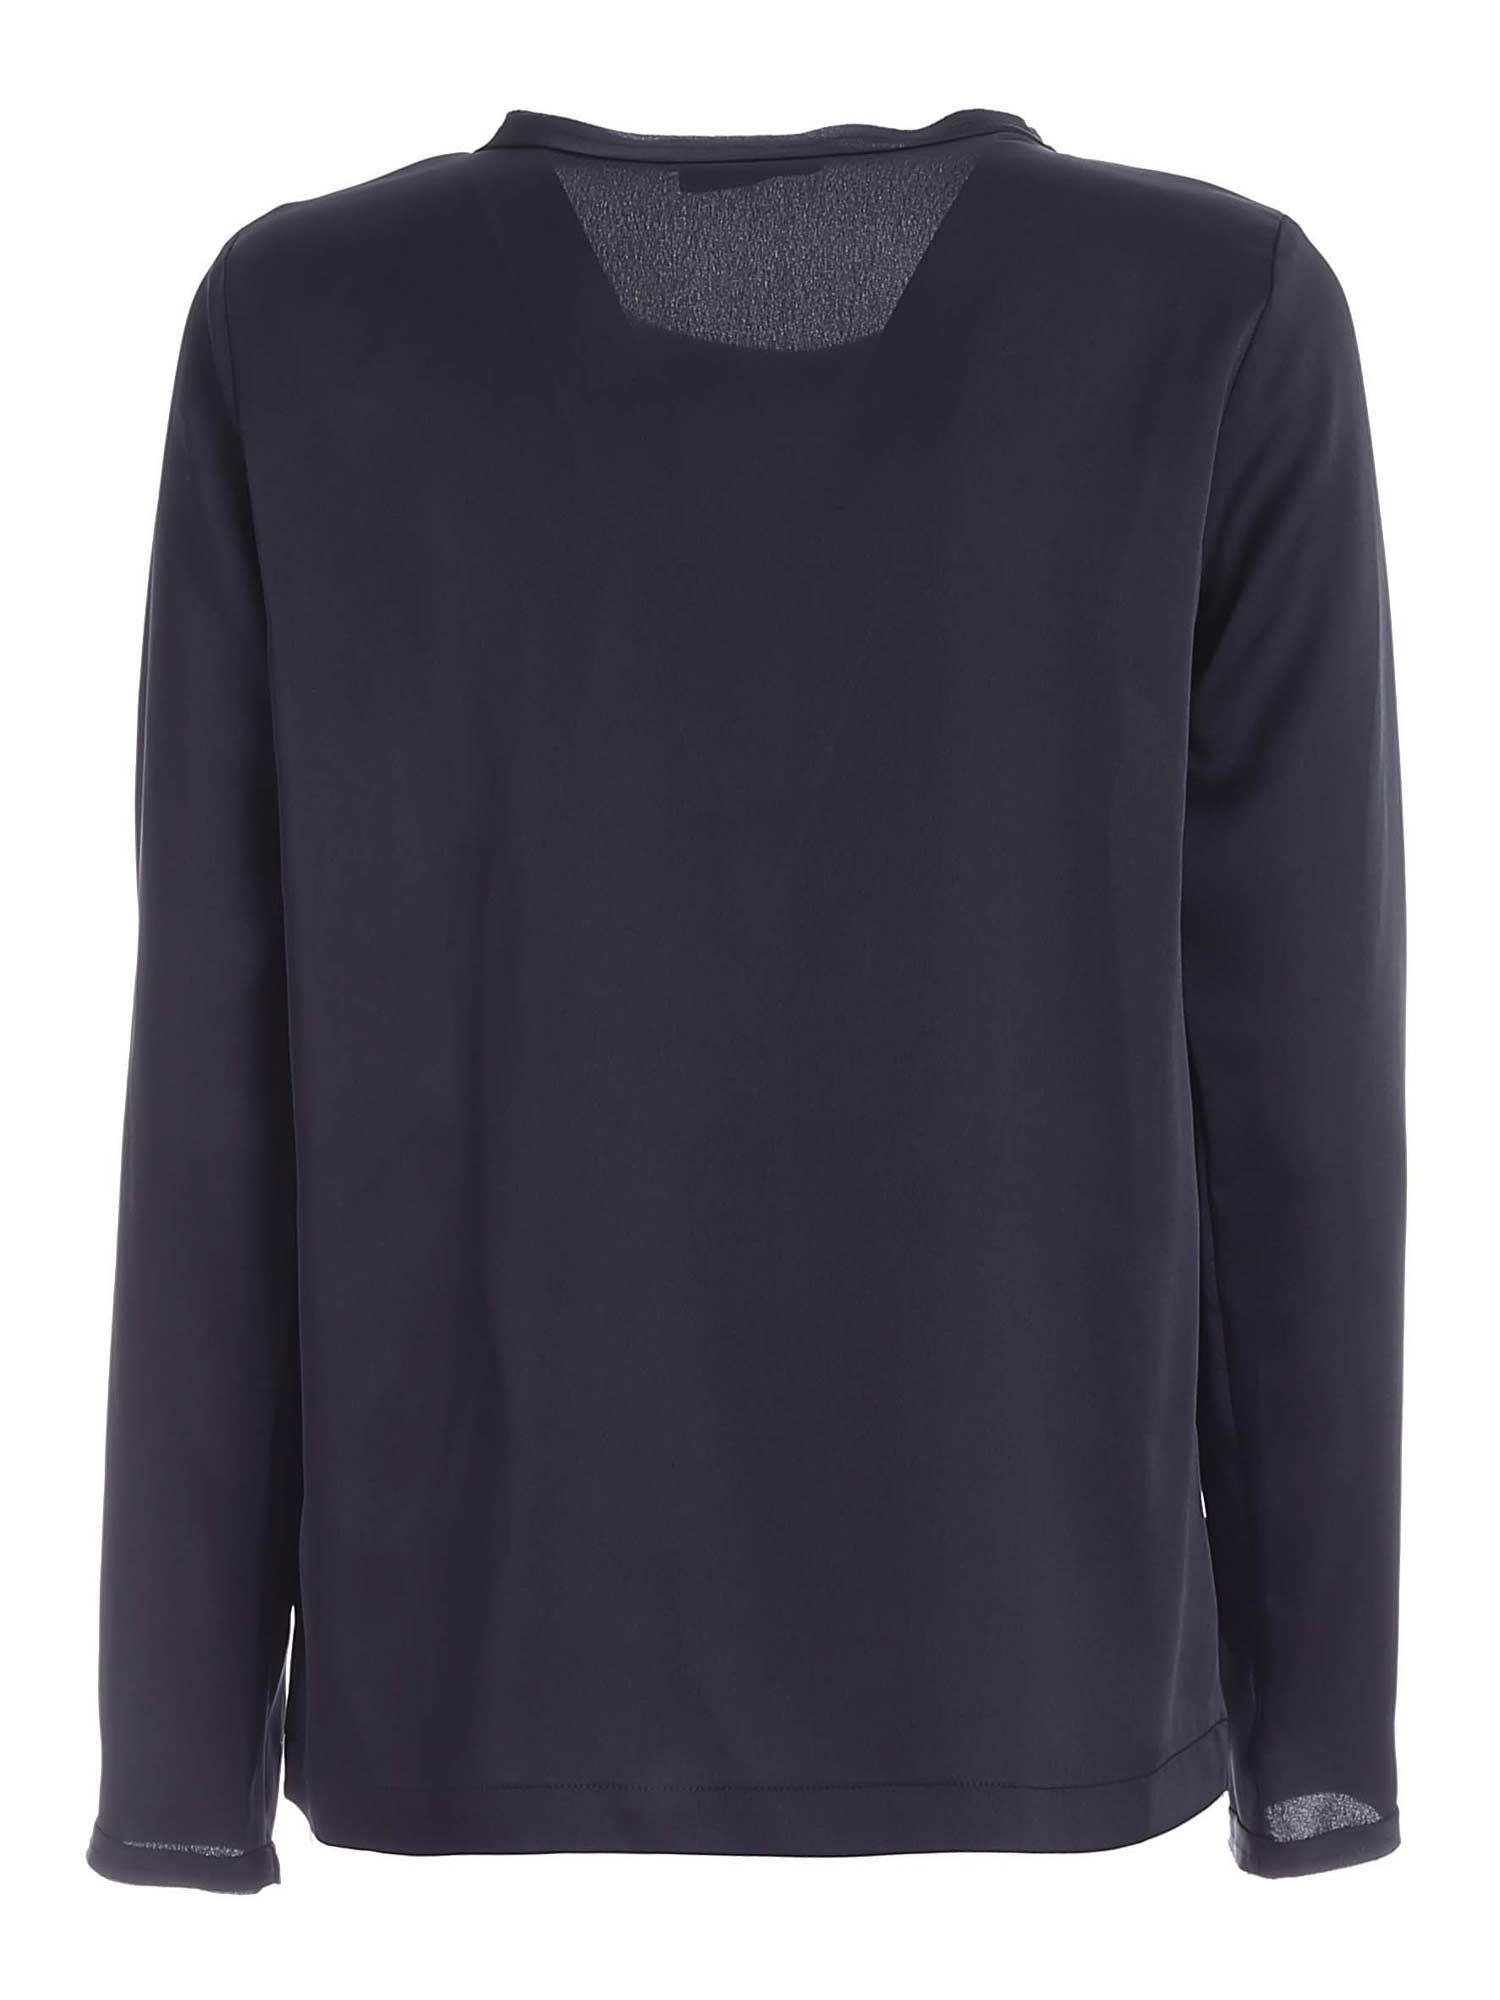 RAW CUT CREWNECK BLOUSE IN BLUE PAOLO FIORILLO CAPRI | 10000004 | 09282701NAVY